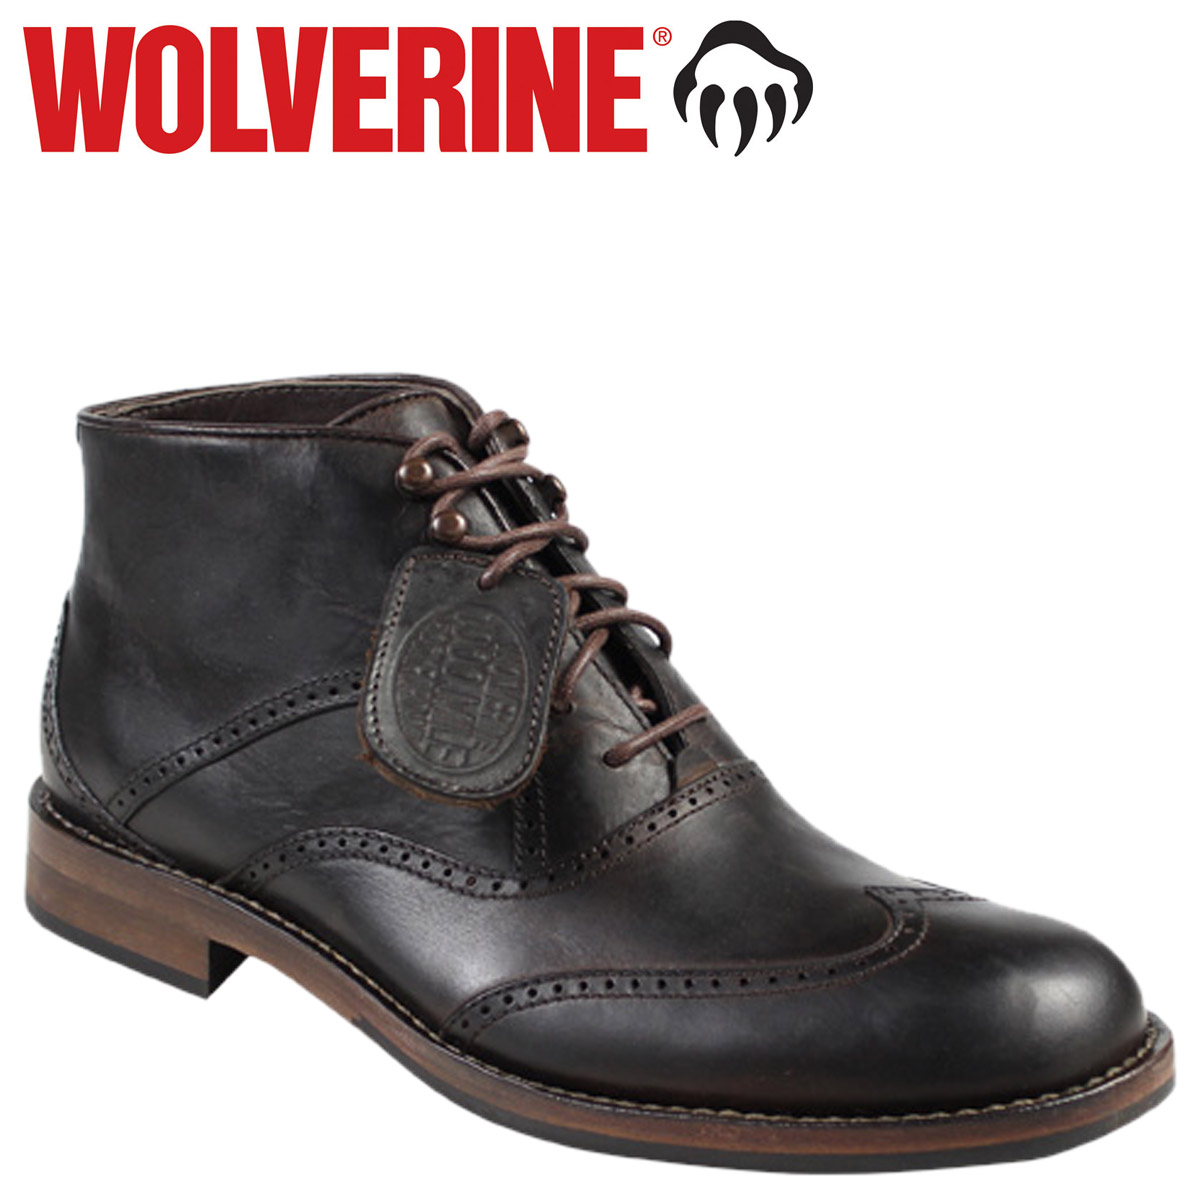 831c4a9ca85 Wolverine WOLVERINE Wesley's 1000 mile wing tip chukka boots WESLEY 1000  MILE WINGTIP CHUKKA BOOT D wise leather mens W05366 Brown [11 / 14 new  stock] ...